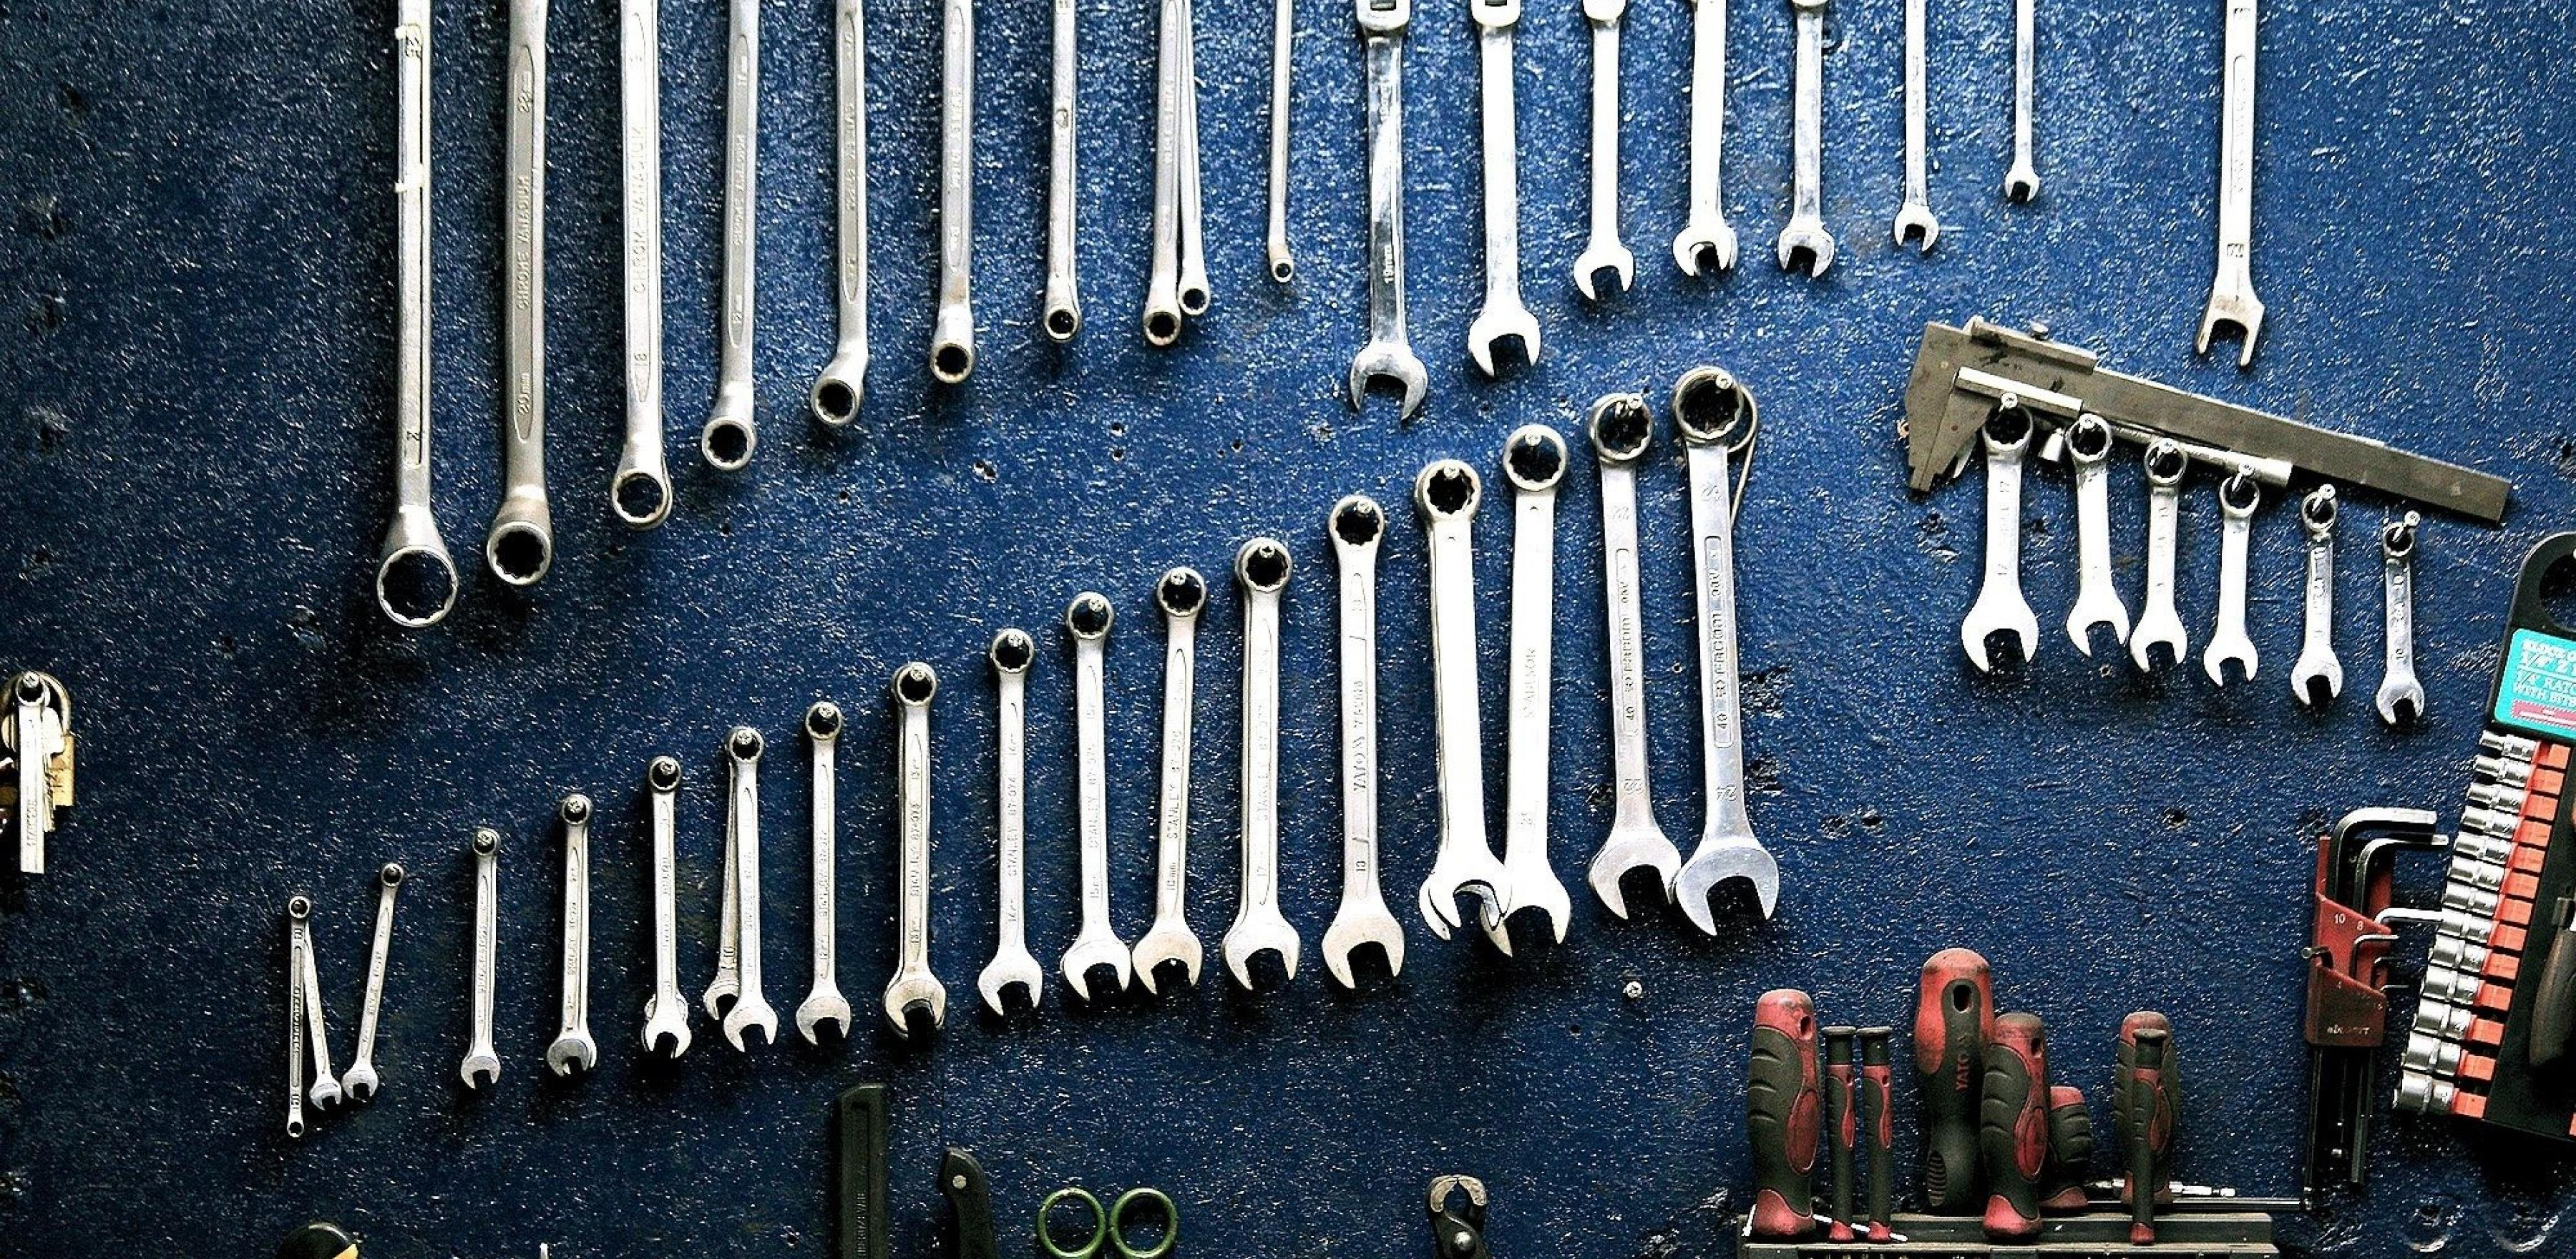 Organized tools hanging up